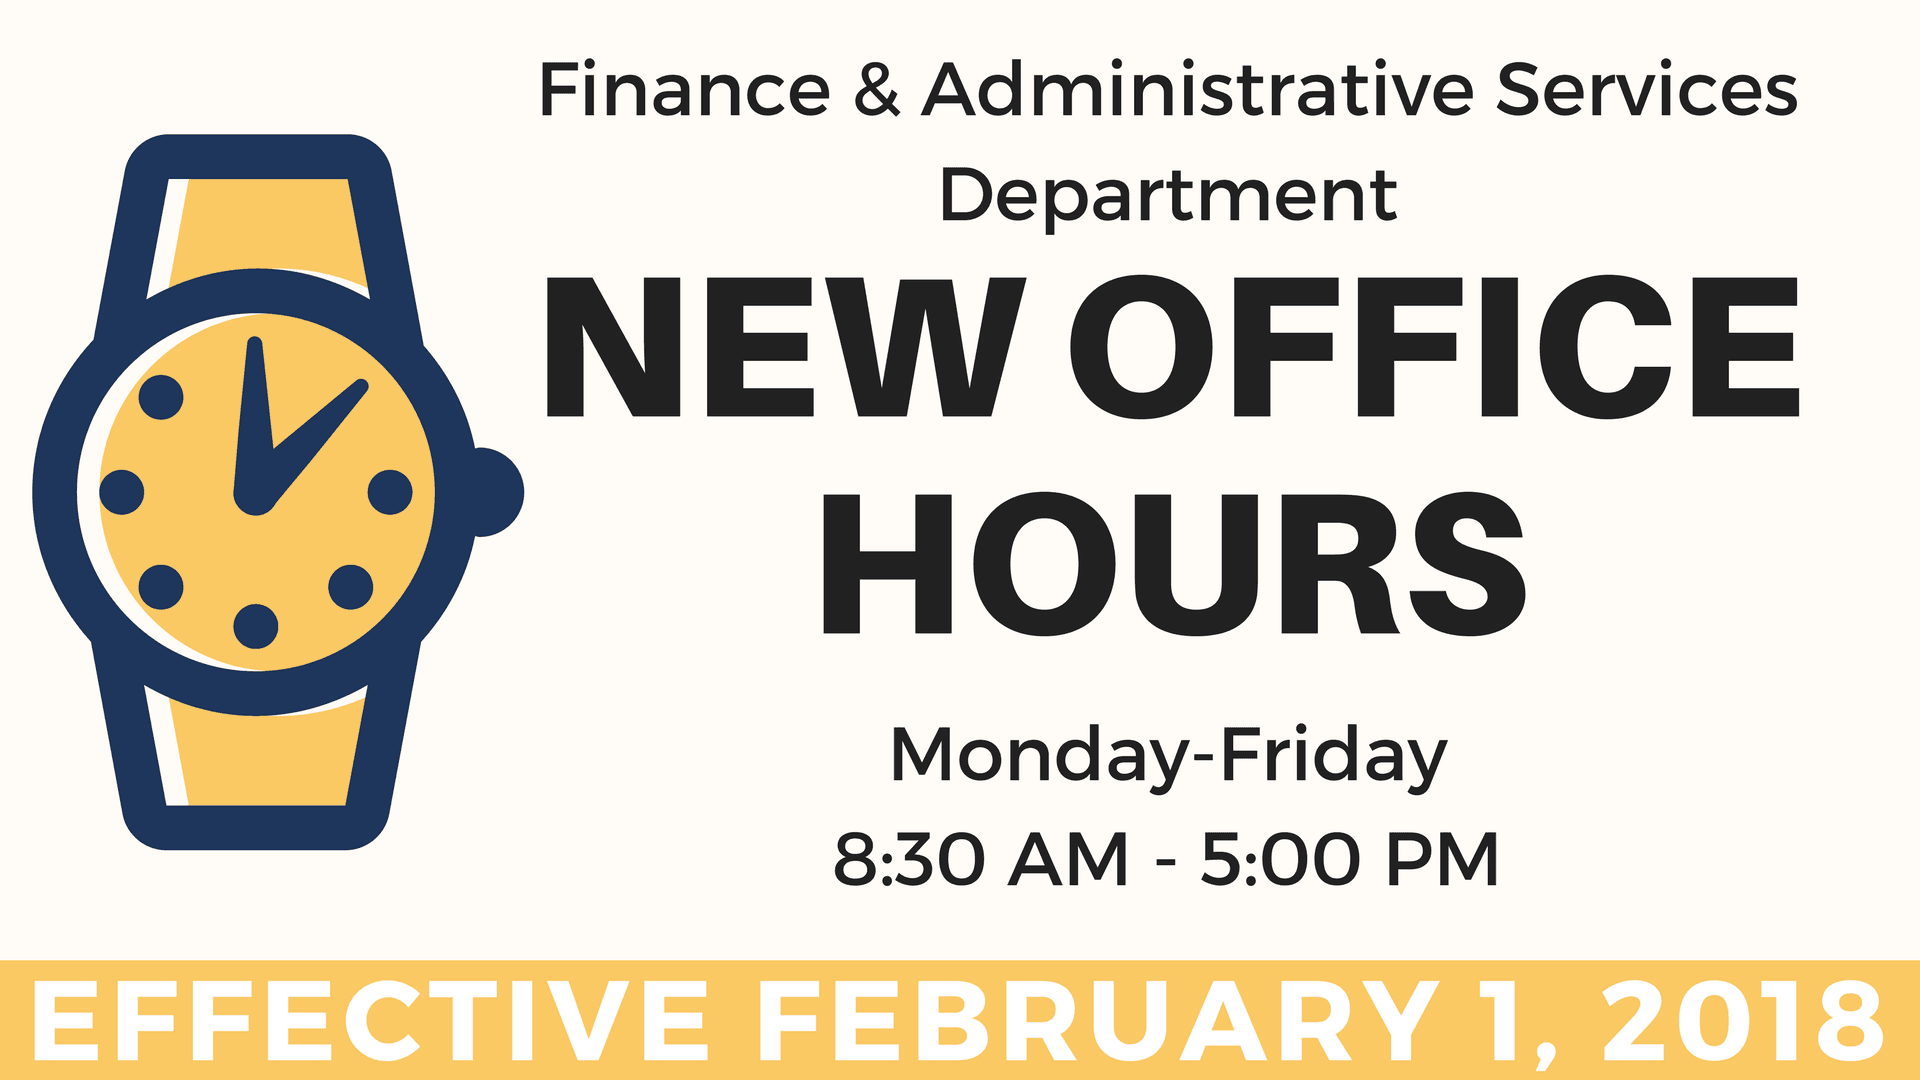 FIN ADM NEW OFFICE HOURS